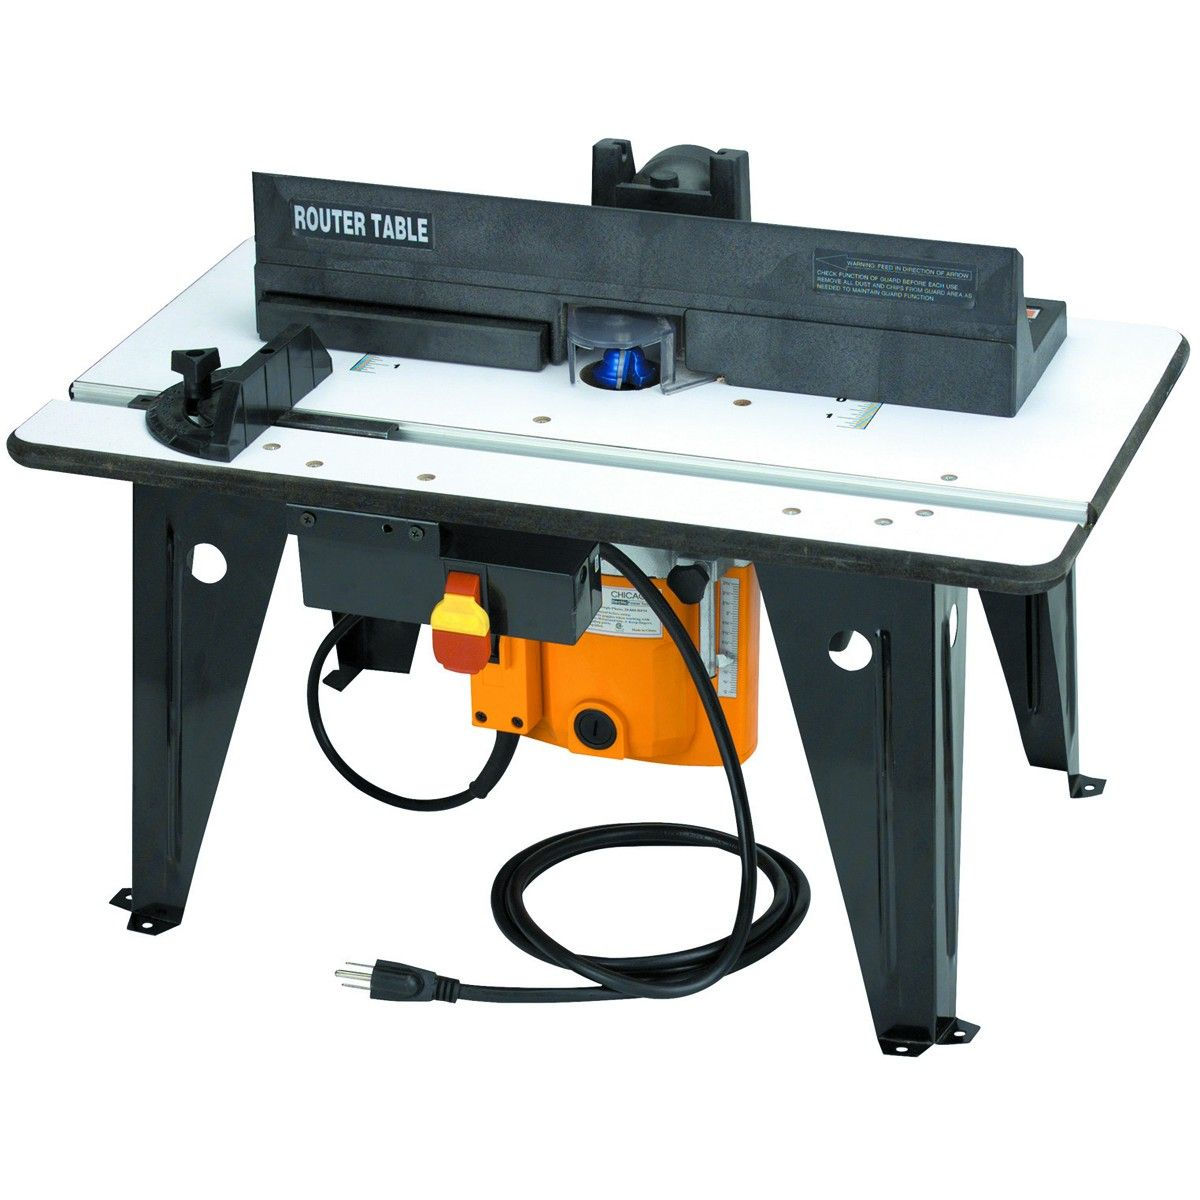 Benchtop router table with 1 34 hp router router table benchtop router table with 1 34 hp router keyboard keysfo Image collections